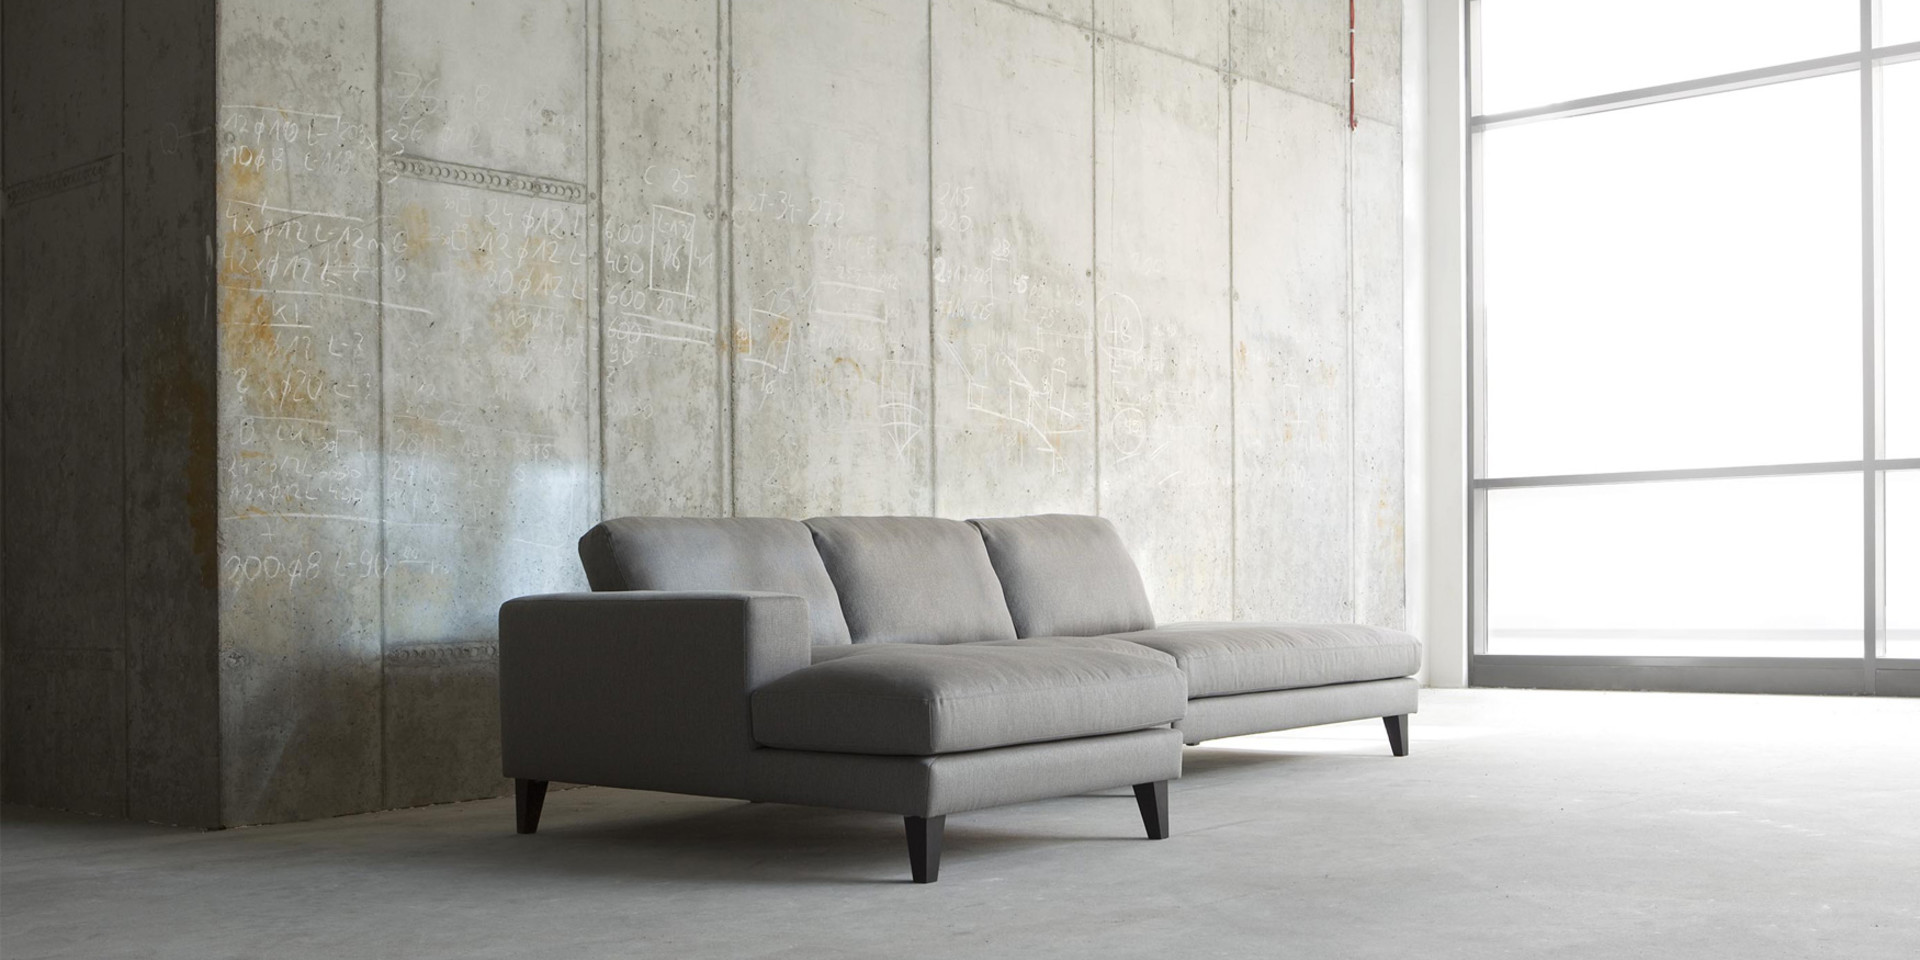 PASSION_arrangement_chaiselongue71left_armchair71_benchright_brallo4_grey_6